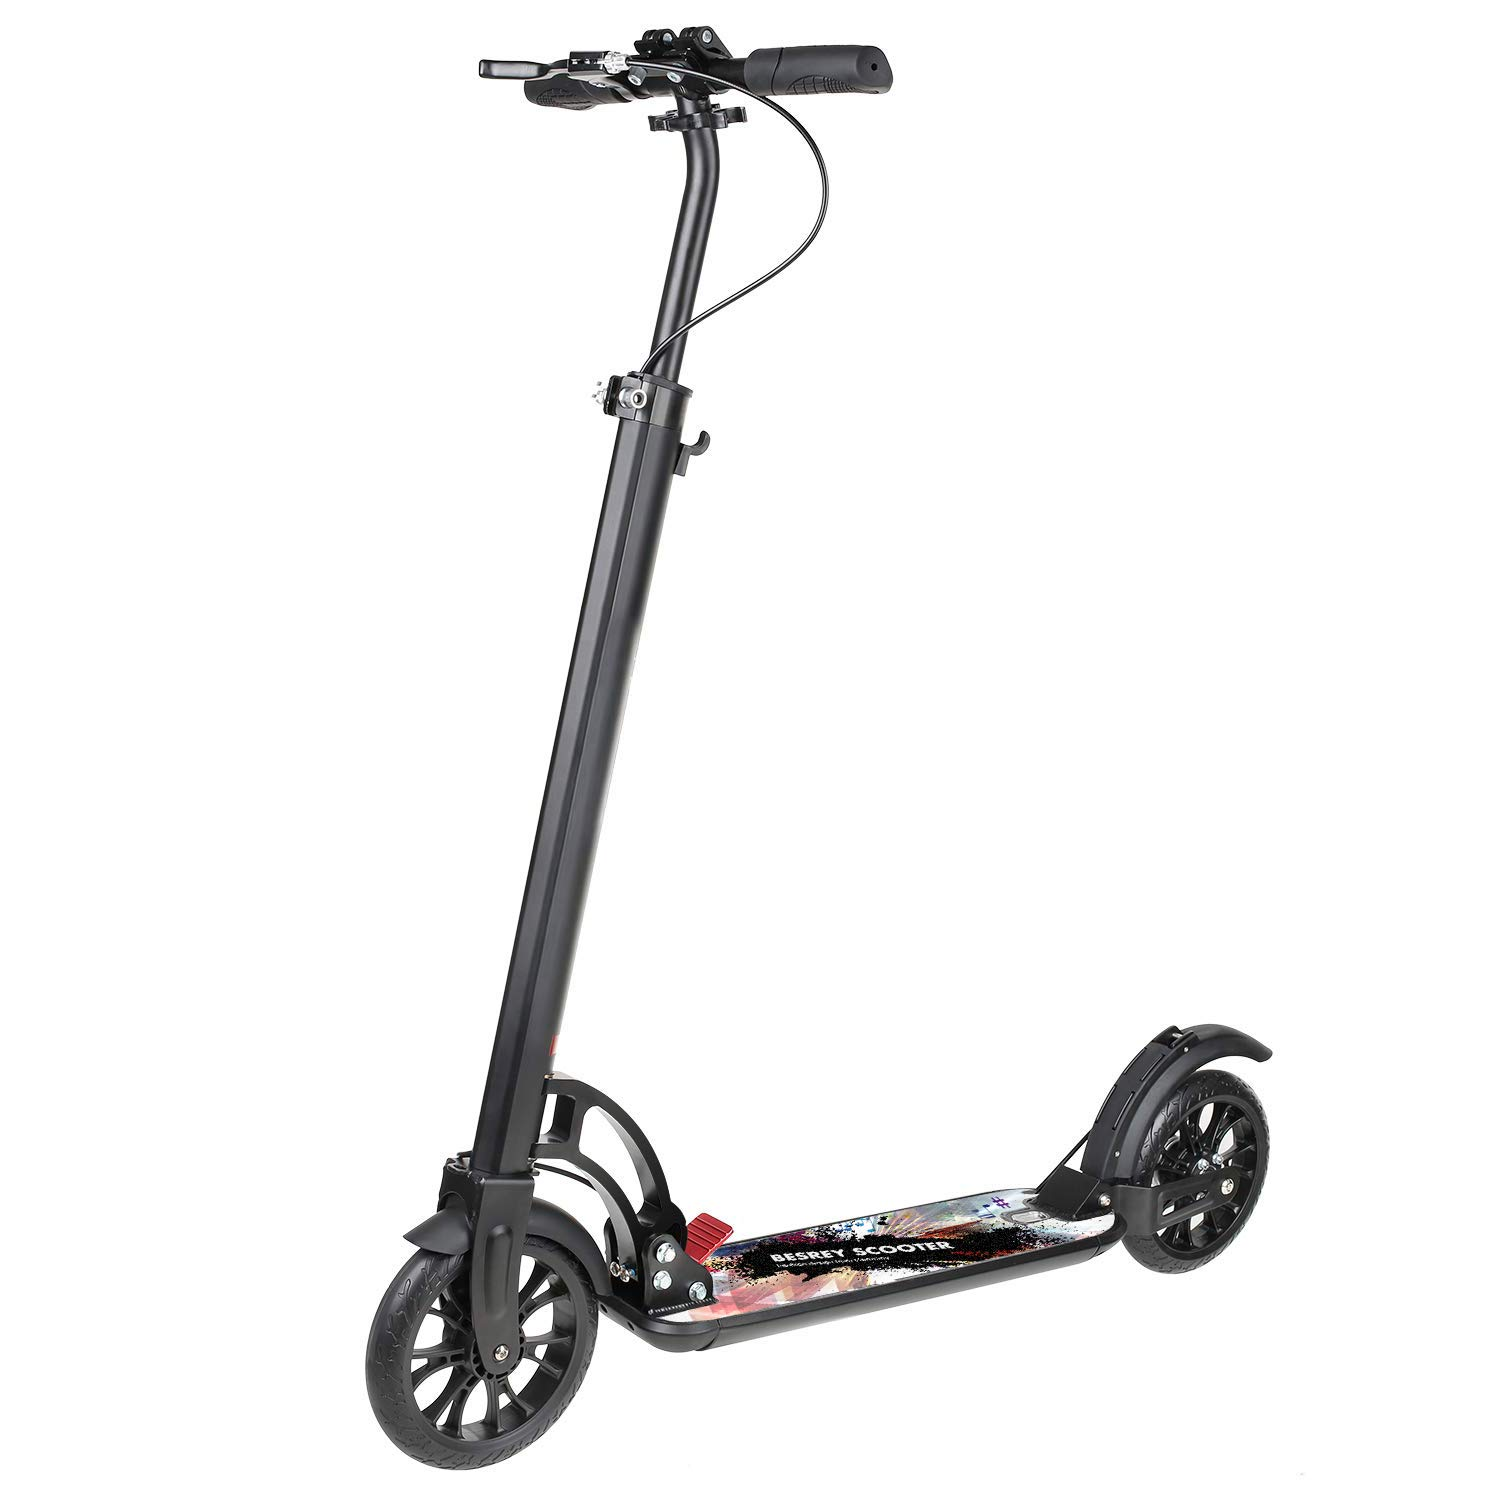 Top 10 Best Kick Scooter For Commuting - Buyer's Guide 38